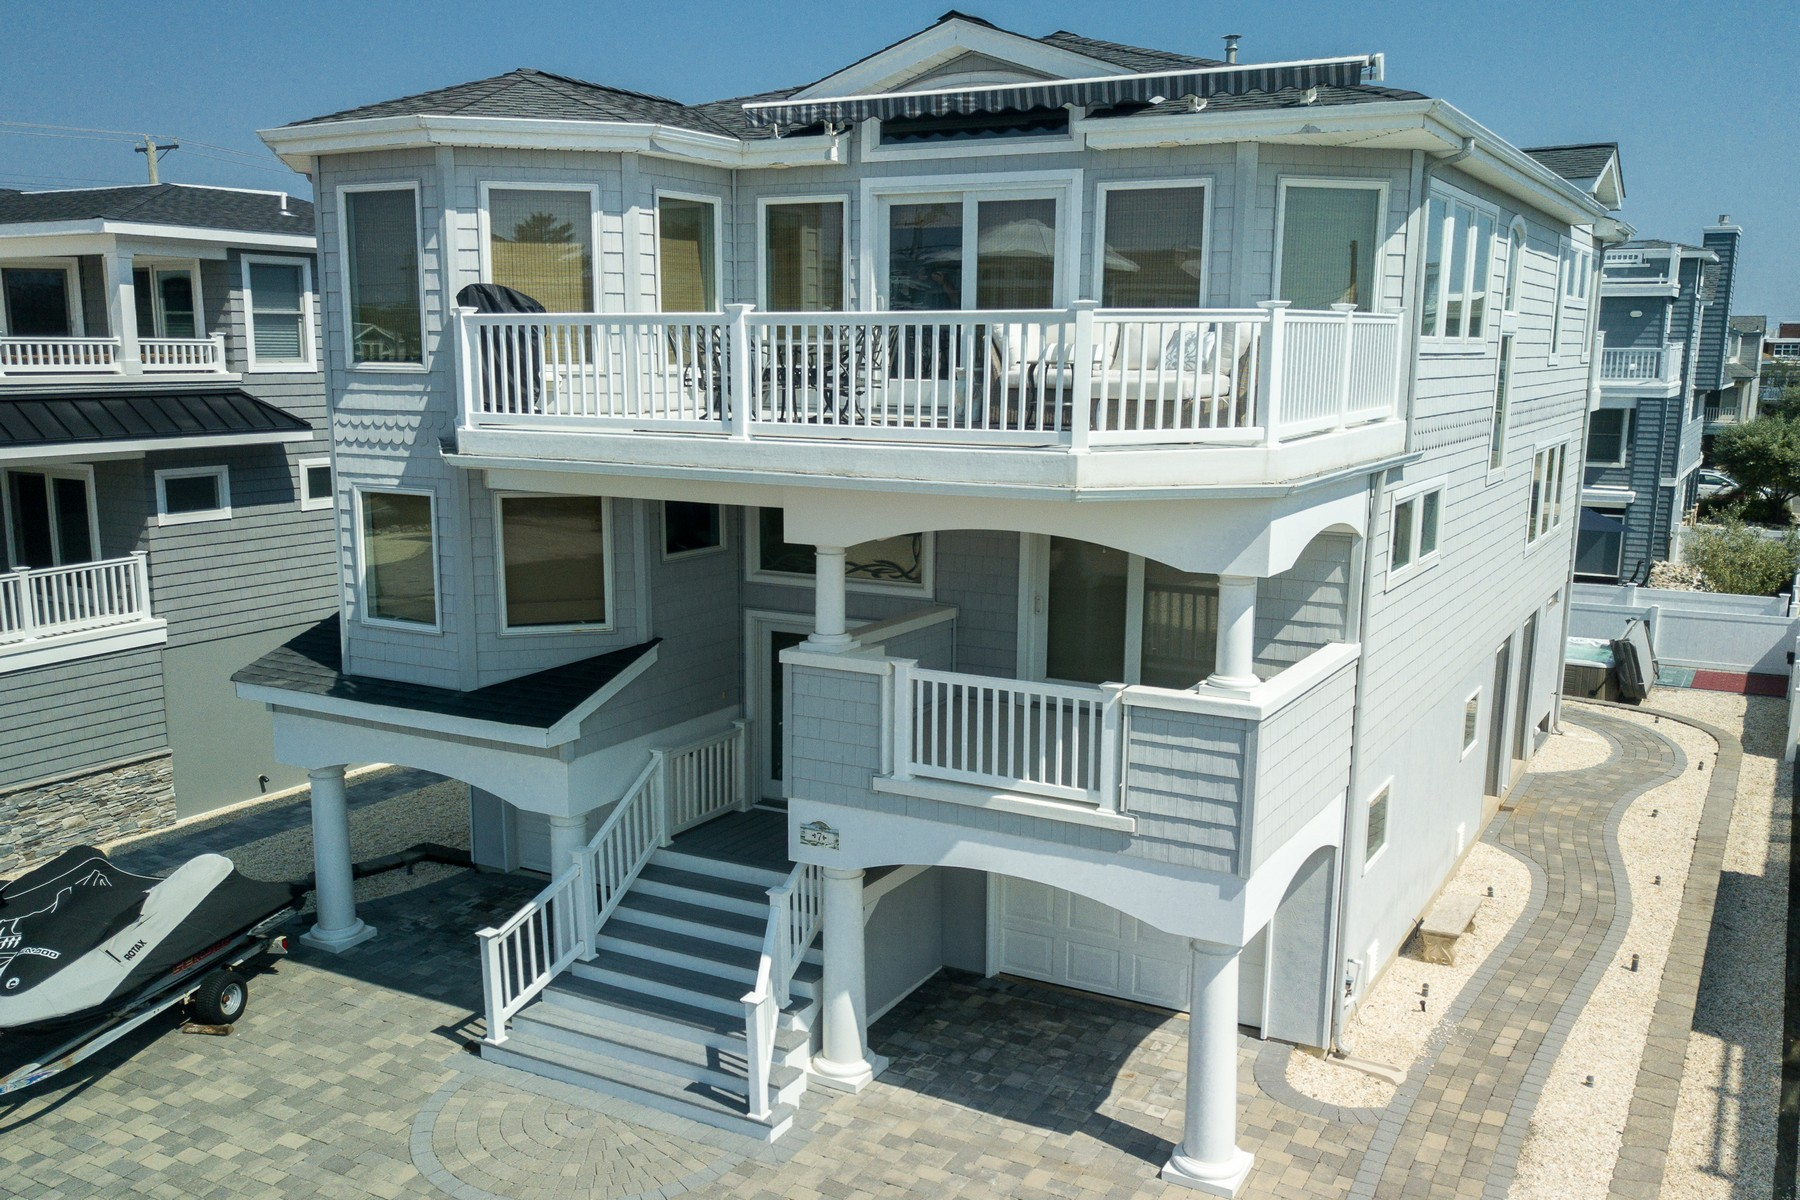 Single Family Home for Sale at CEDAR'S BREEZE 7 E. 85th Street Harvey Cedars, New Jersey 08008 United States